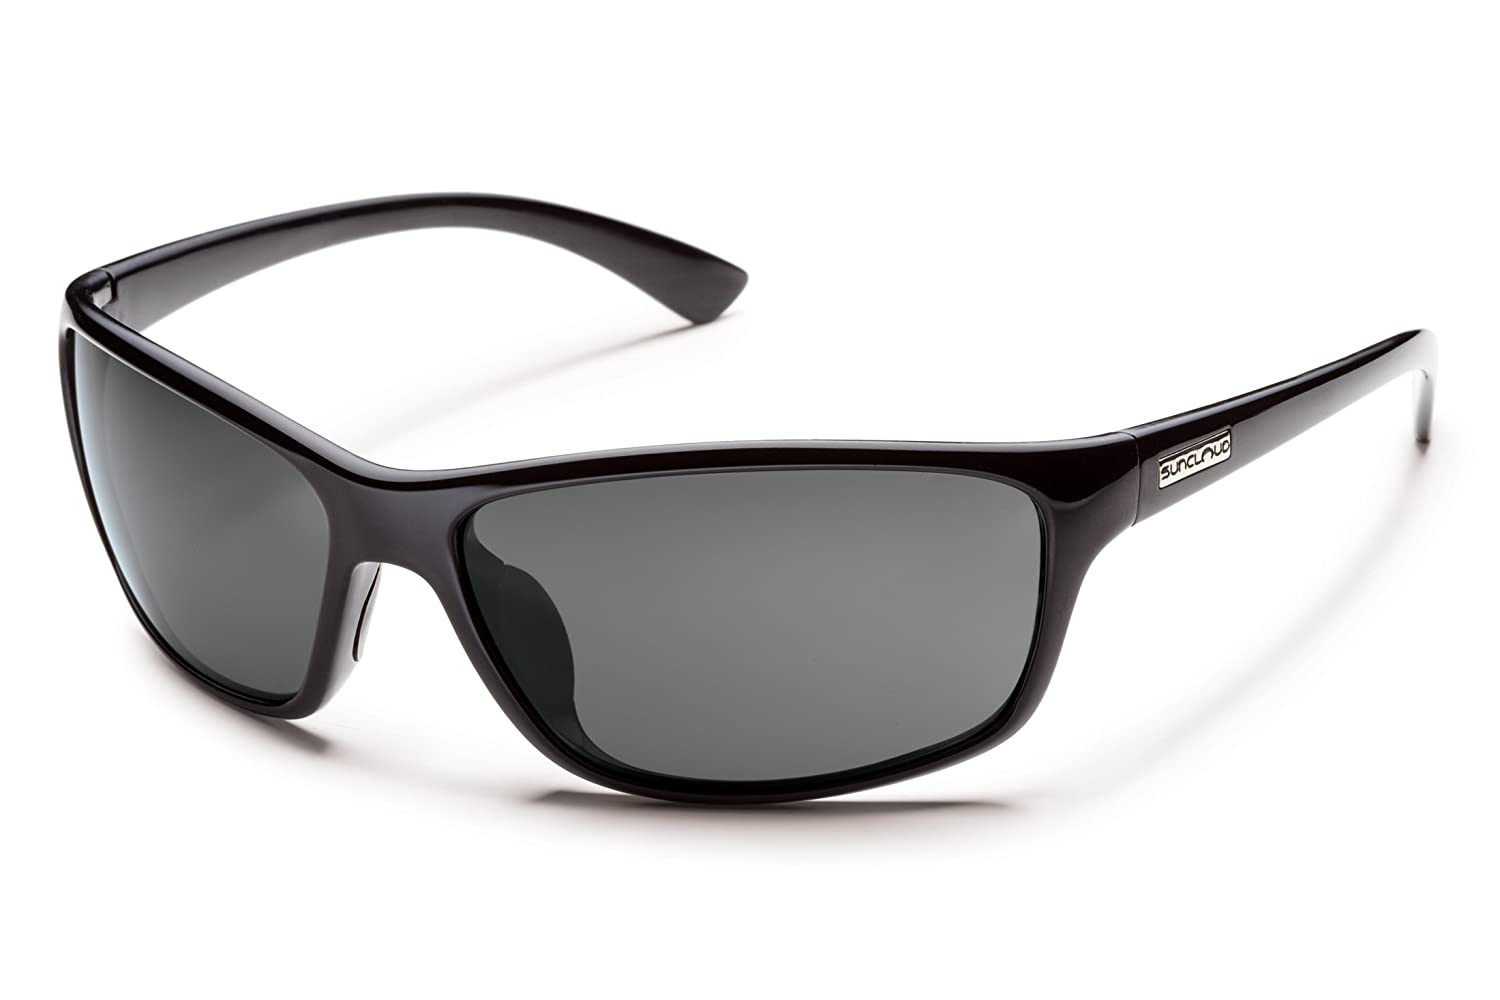 62b395e19cf Amazon.com  Suncloud Sentry Polarized Sunglass (Black Frame Gray Polar  Lens)  Sports   Outdoors